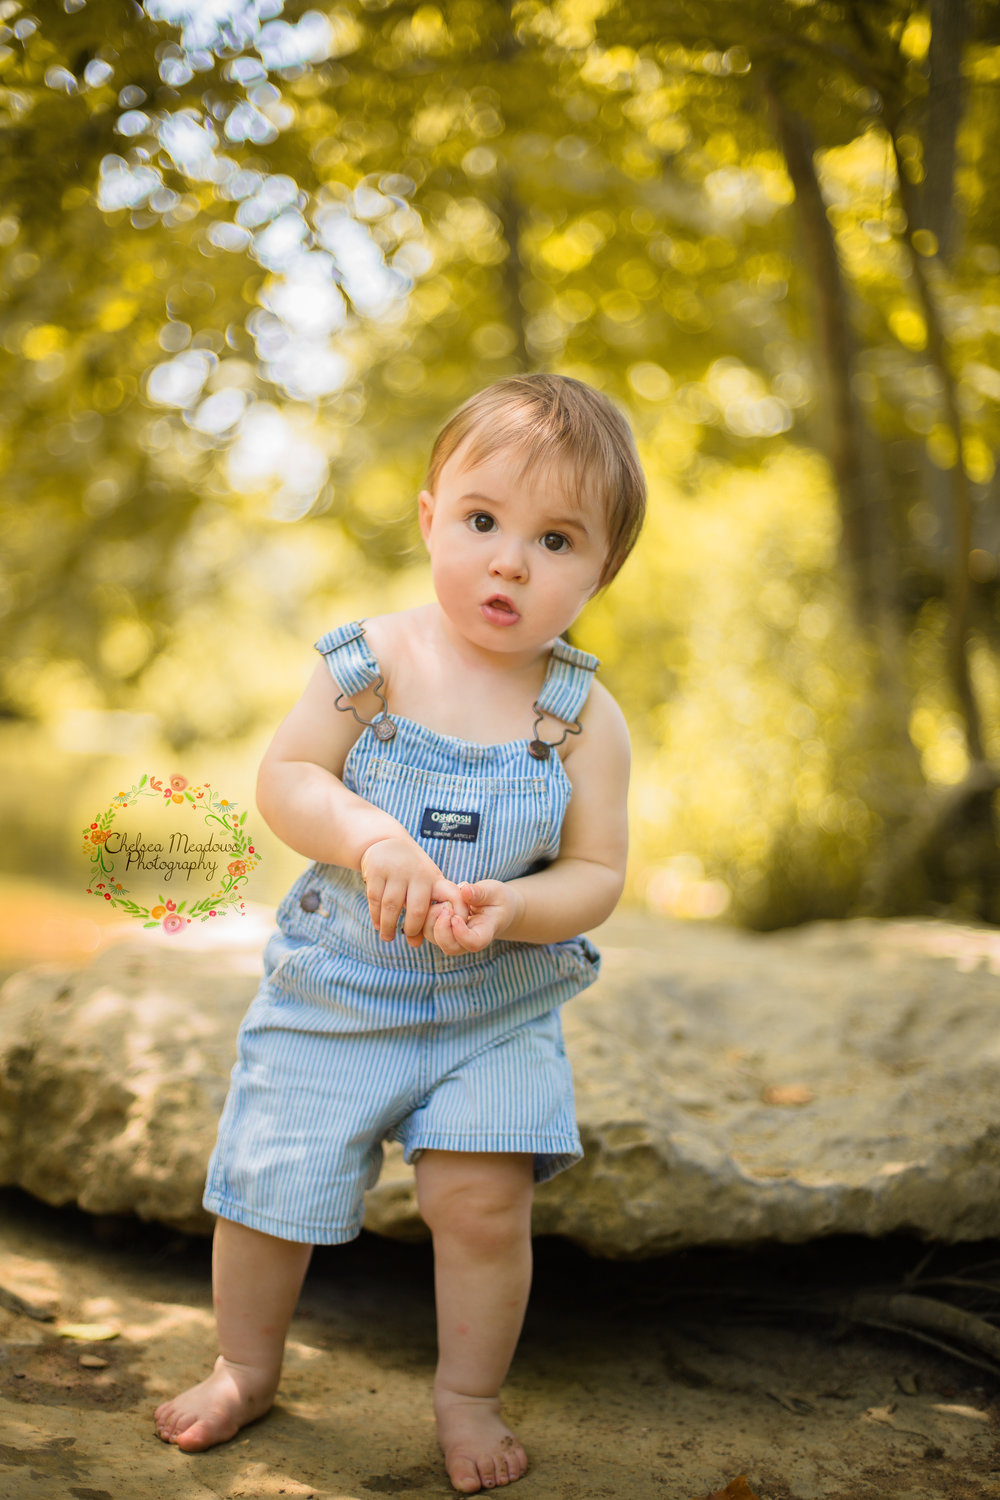 Rowans First Birthday - Nashville Family Photographer - Chelsea Meadows Photography (8).jpg